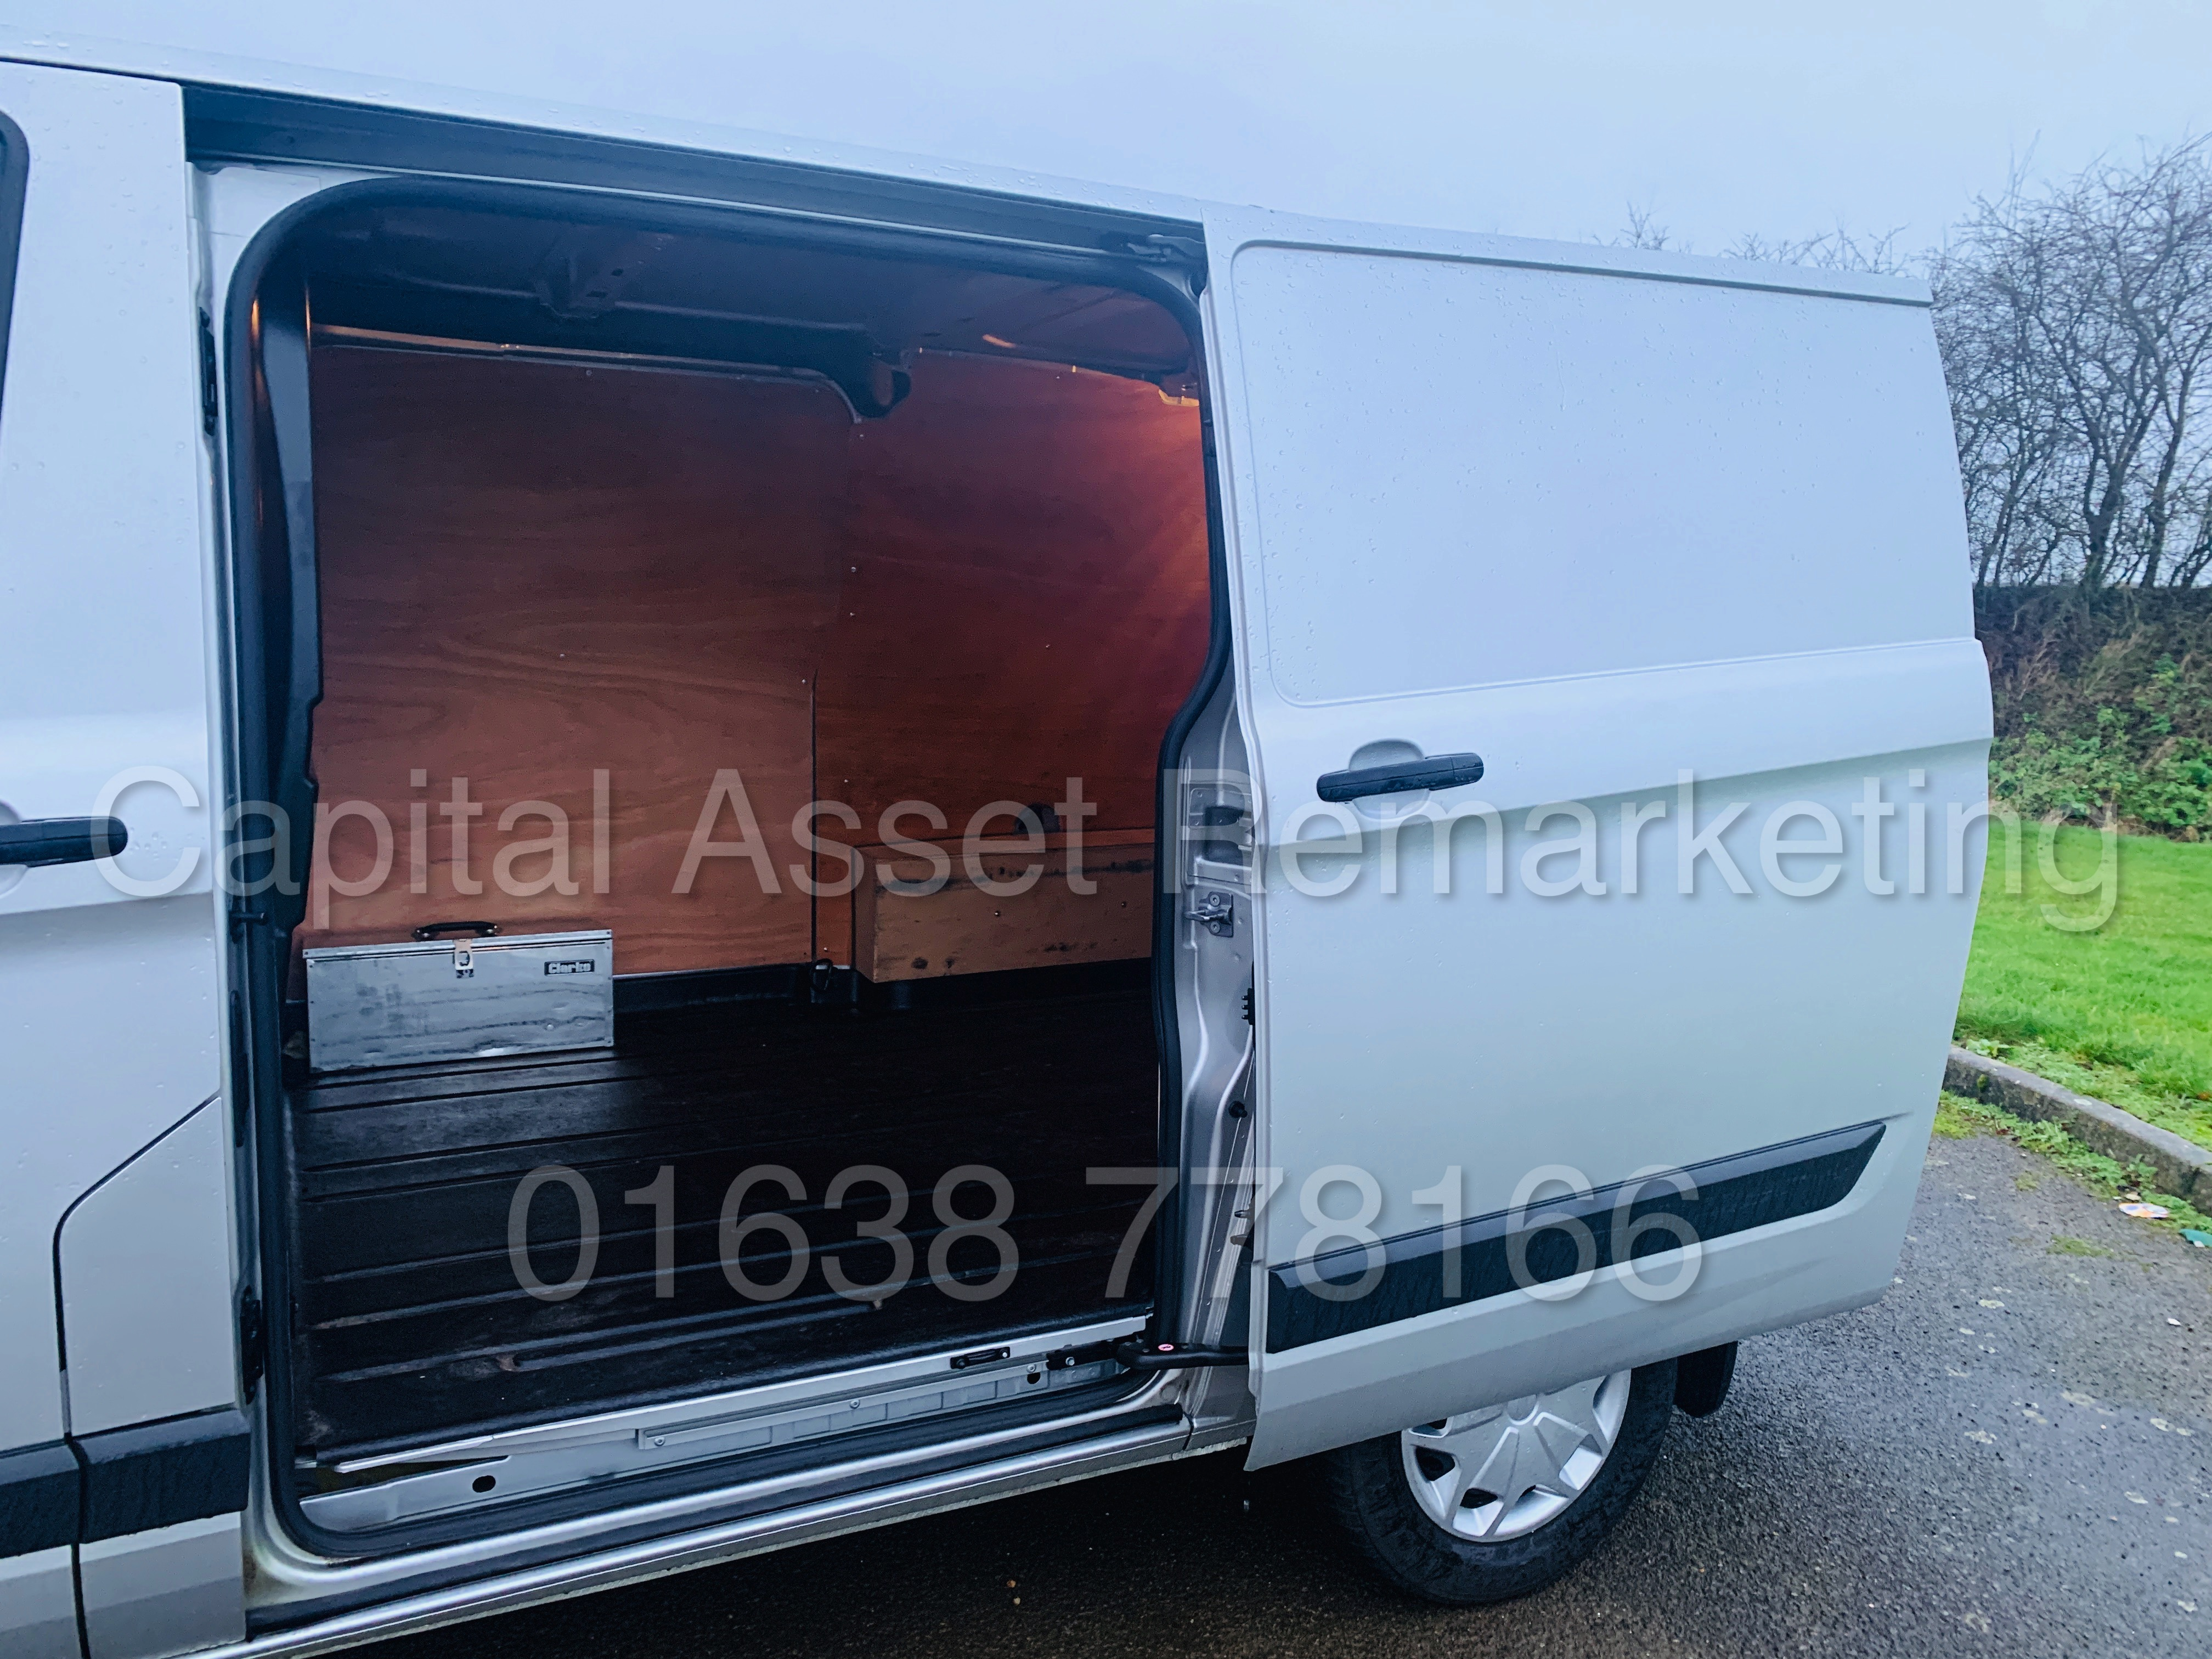 (On Sale) FORD TRANSIT *TREND* 290 SWB (2017 - EURO 6 / AD-BLUE) '2.0 TDCI - 130 BHP - 6 SPEED' - Image 20 of 41